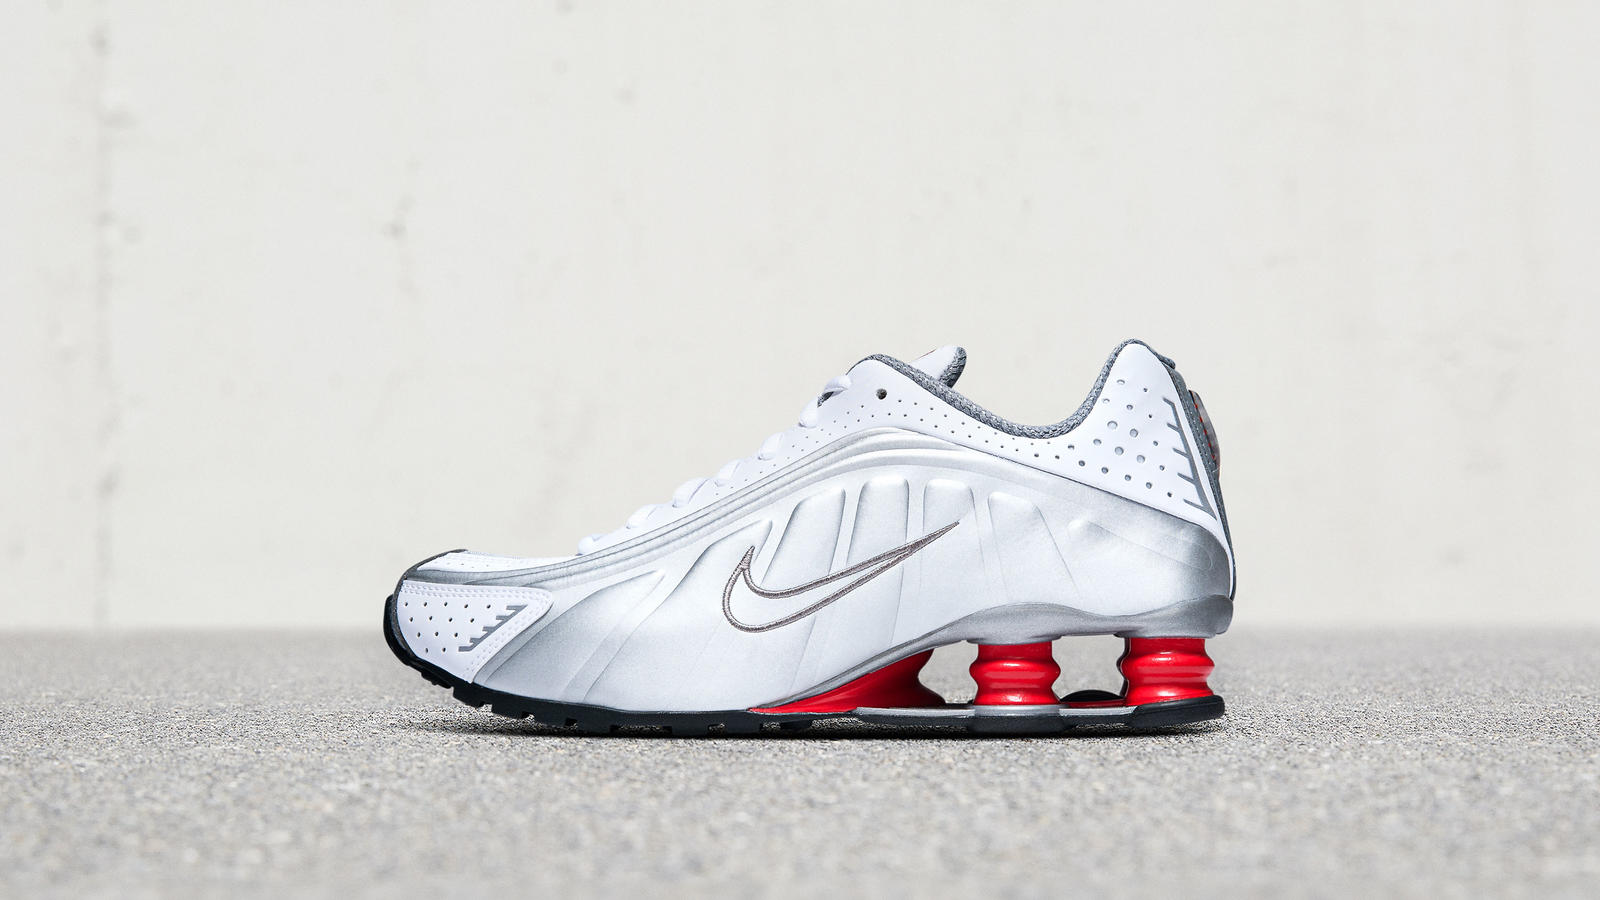 timeless design cdc7e 6f662 How to Get the Nike Shox R4 0